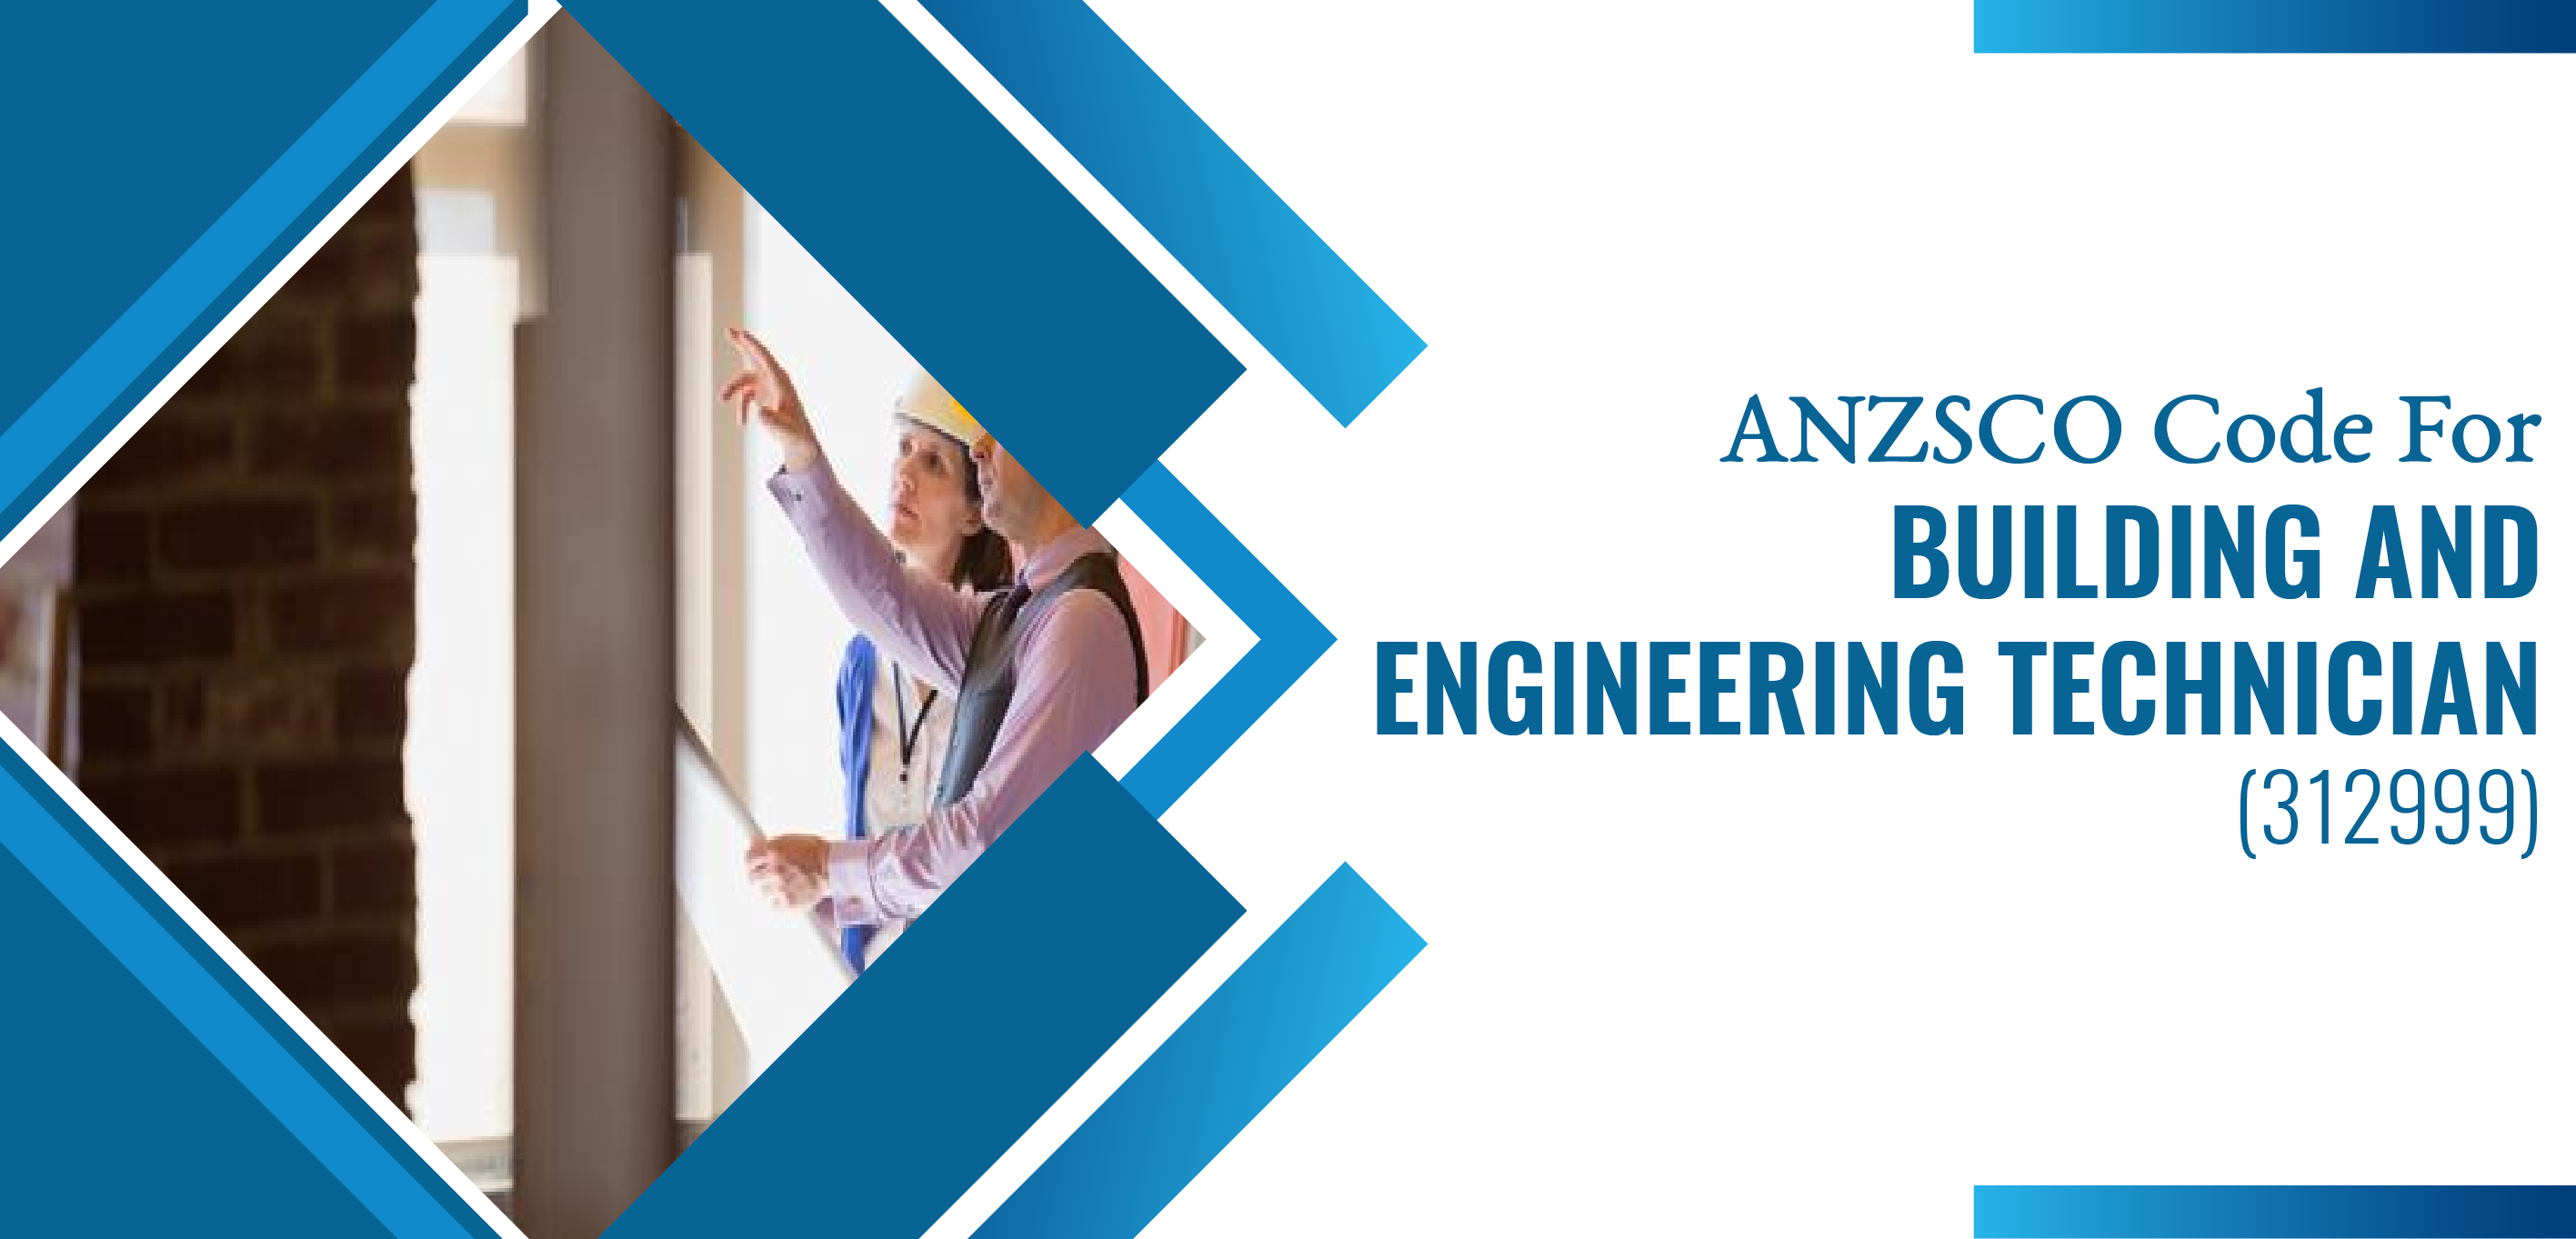 Building and Engineering Technician ANZSCO